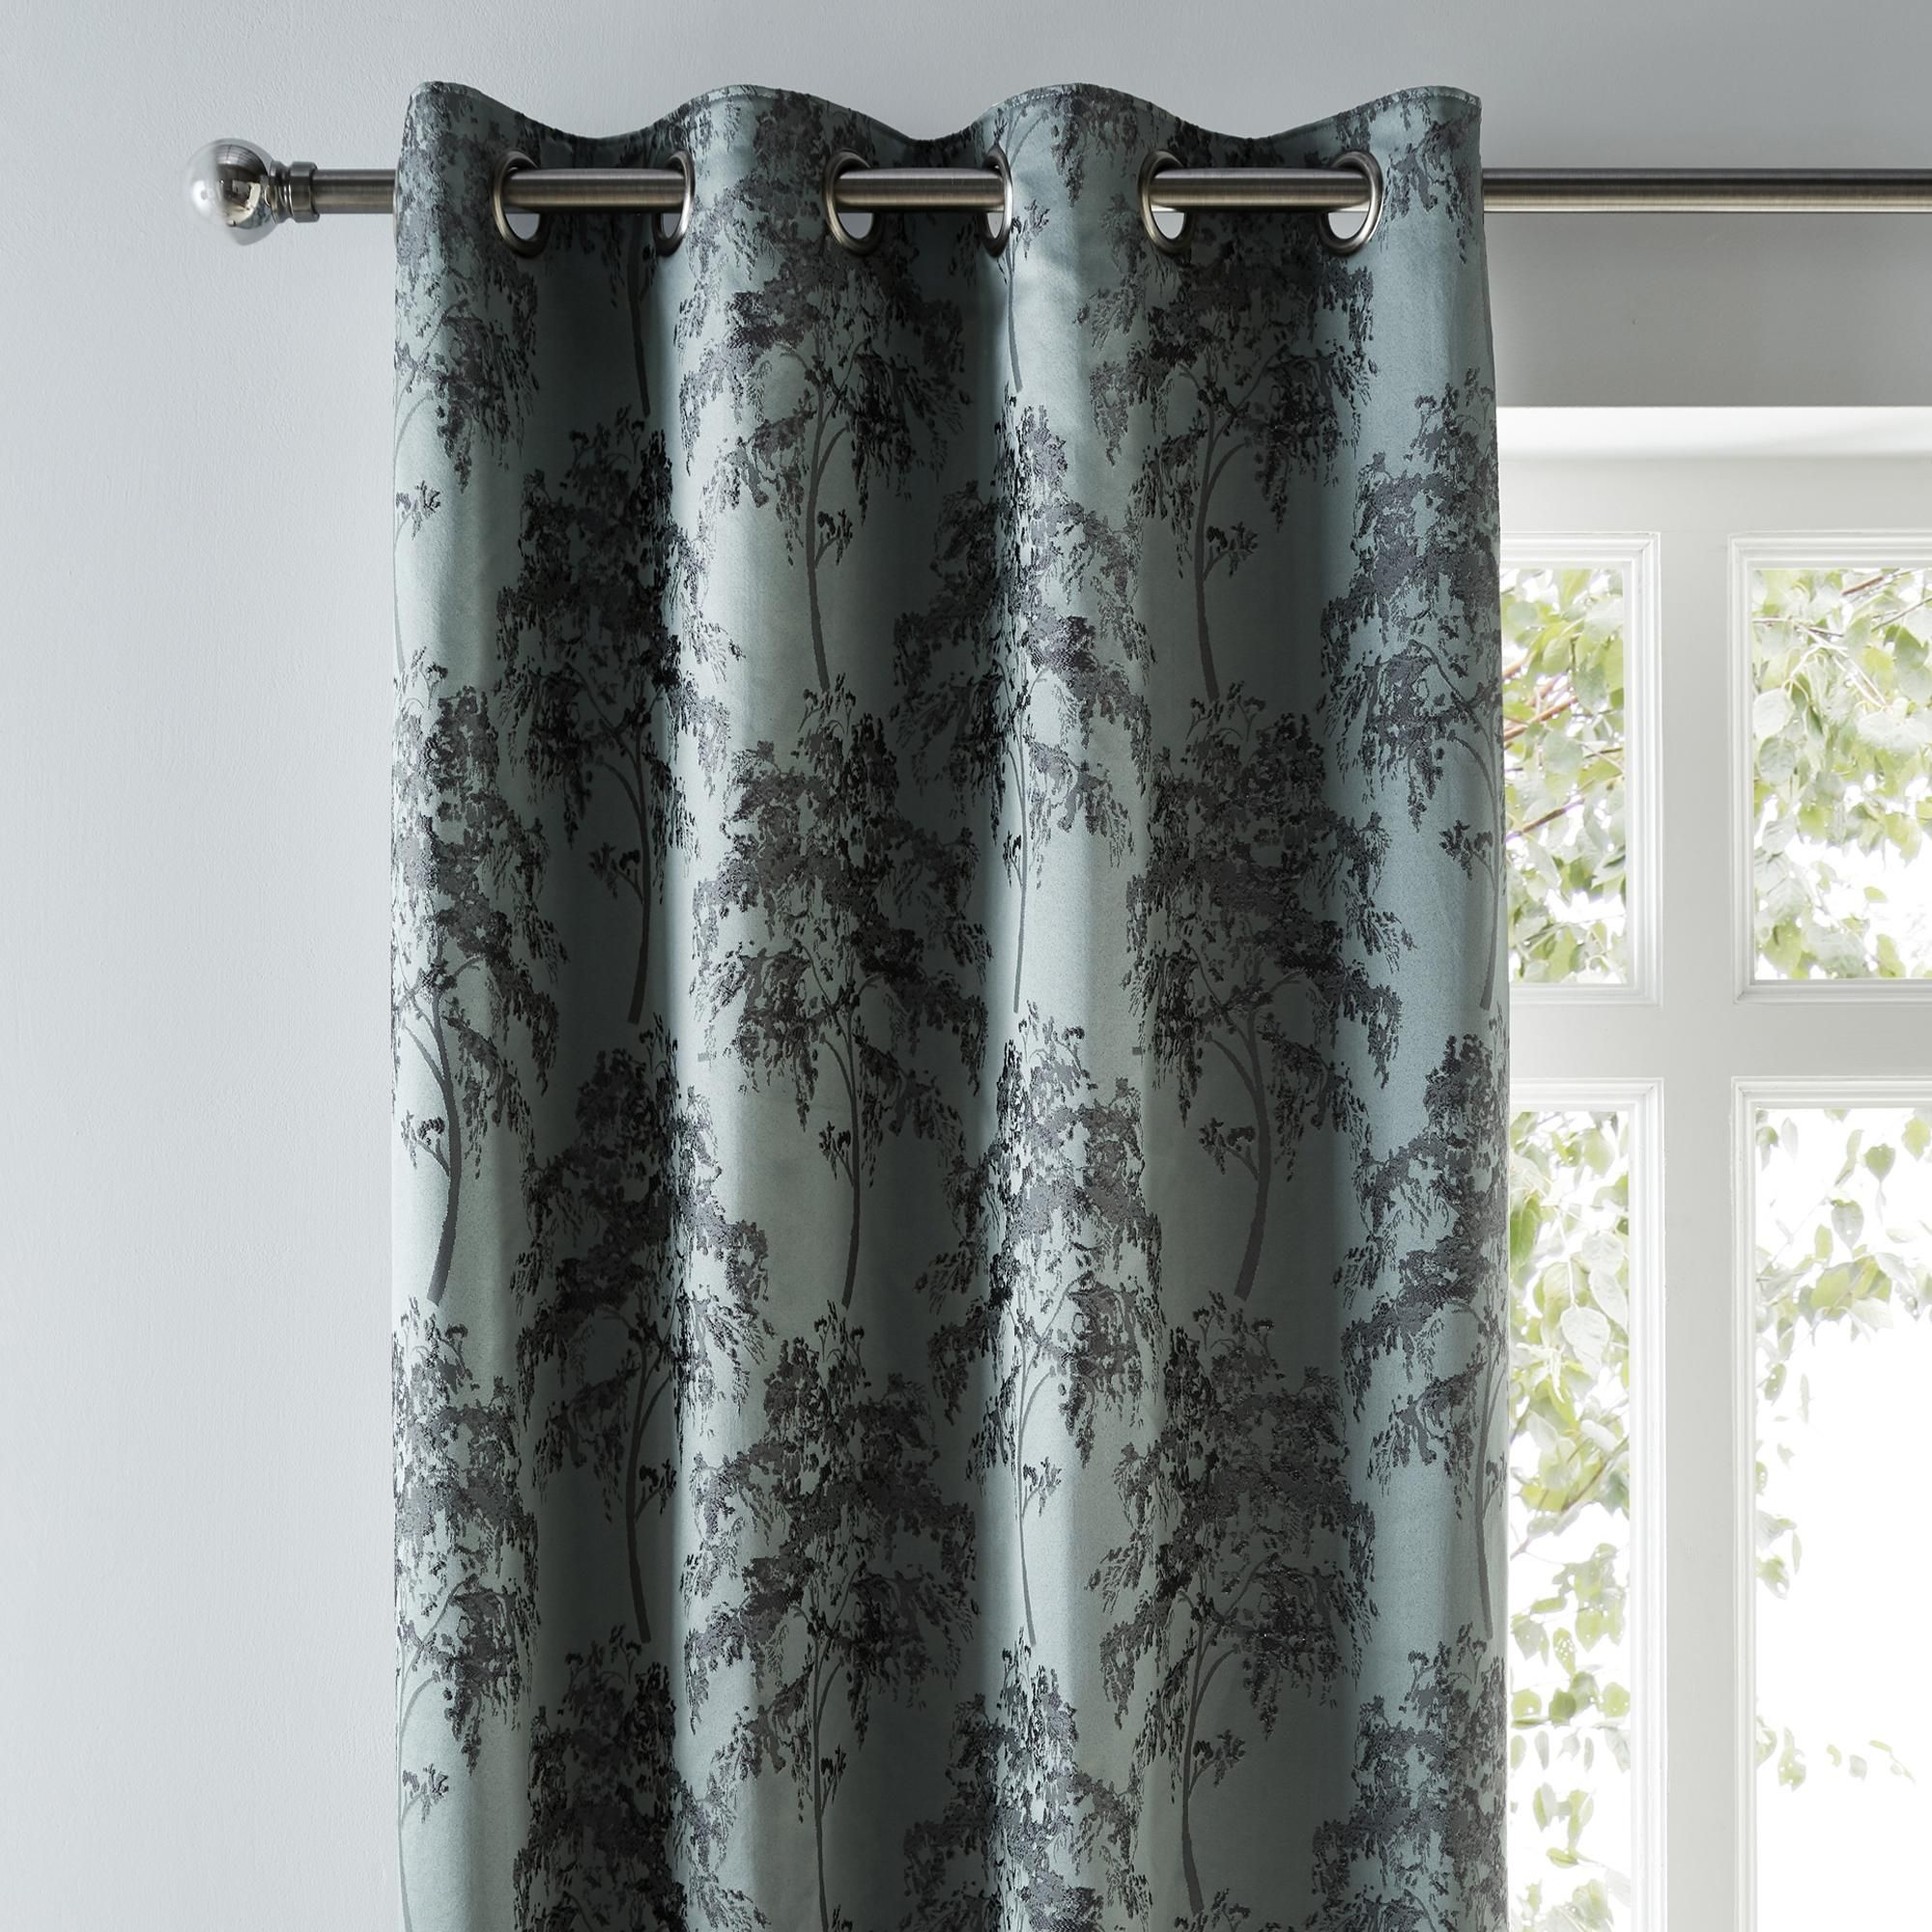 Lux Tree Woven Eyelet Curtains In 2020 Curtains Tree Patterns